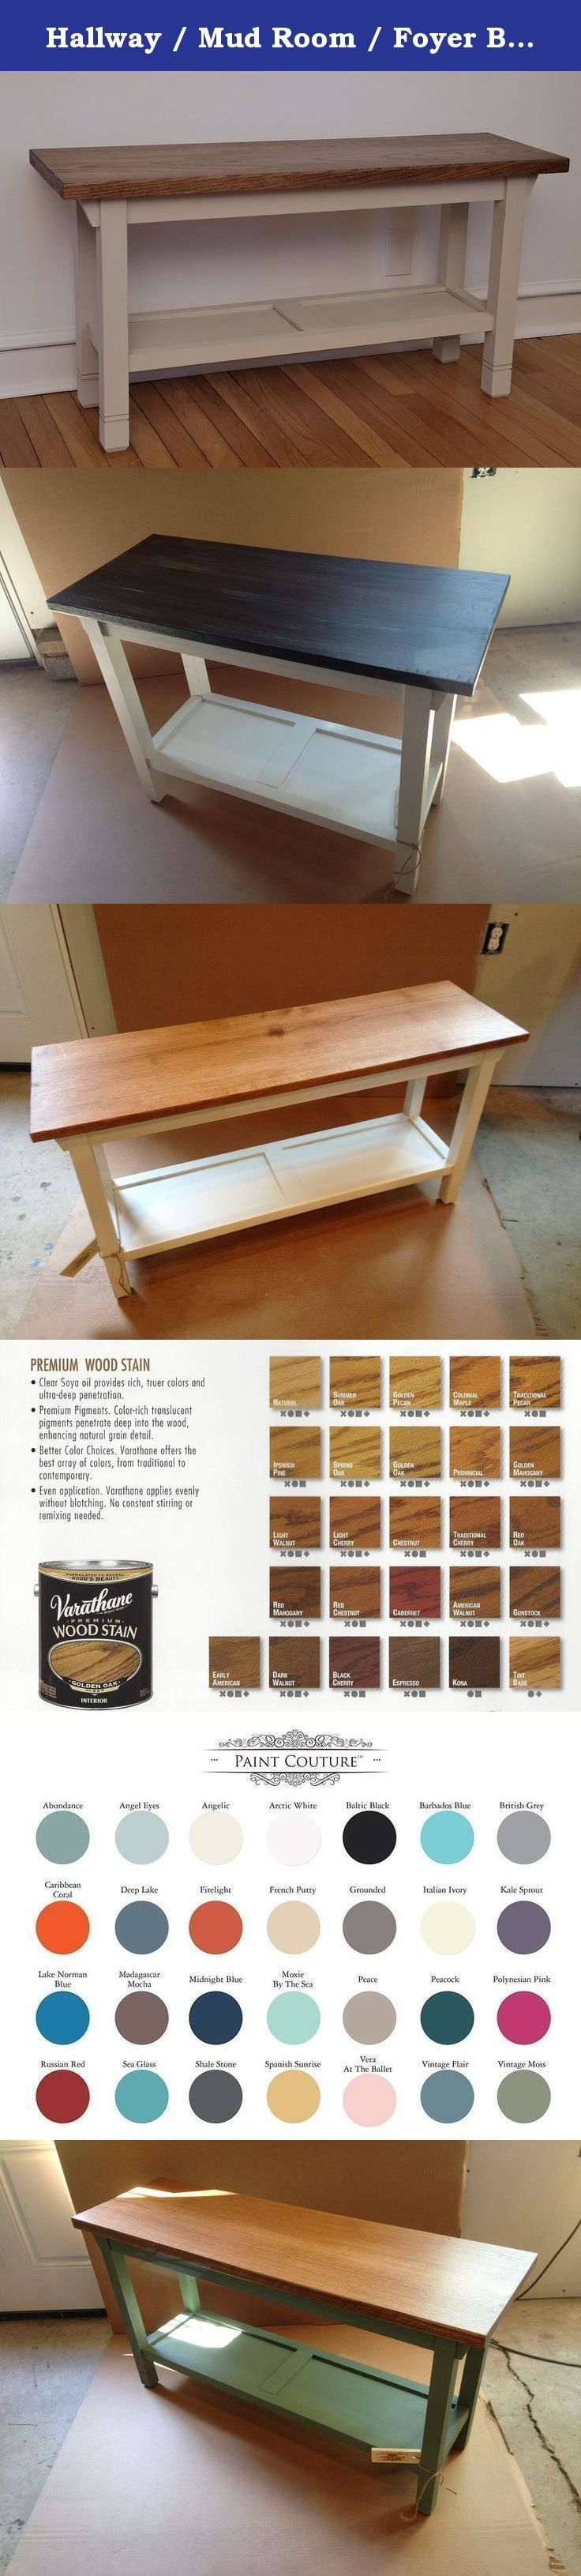 Foyer Seating Guide : Must see foyer bench entryway decor ideas